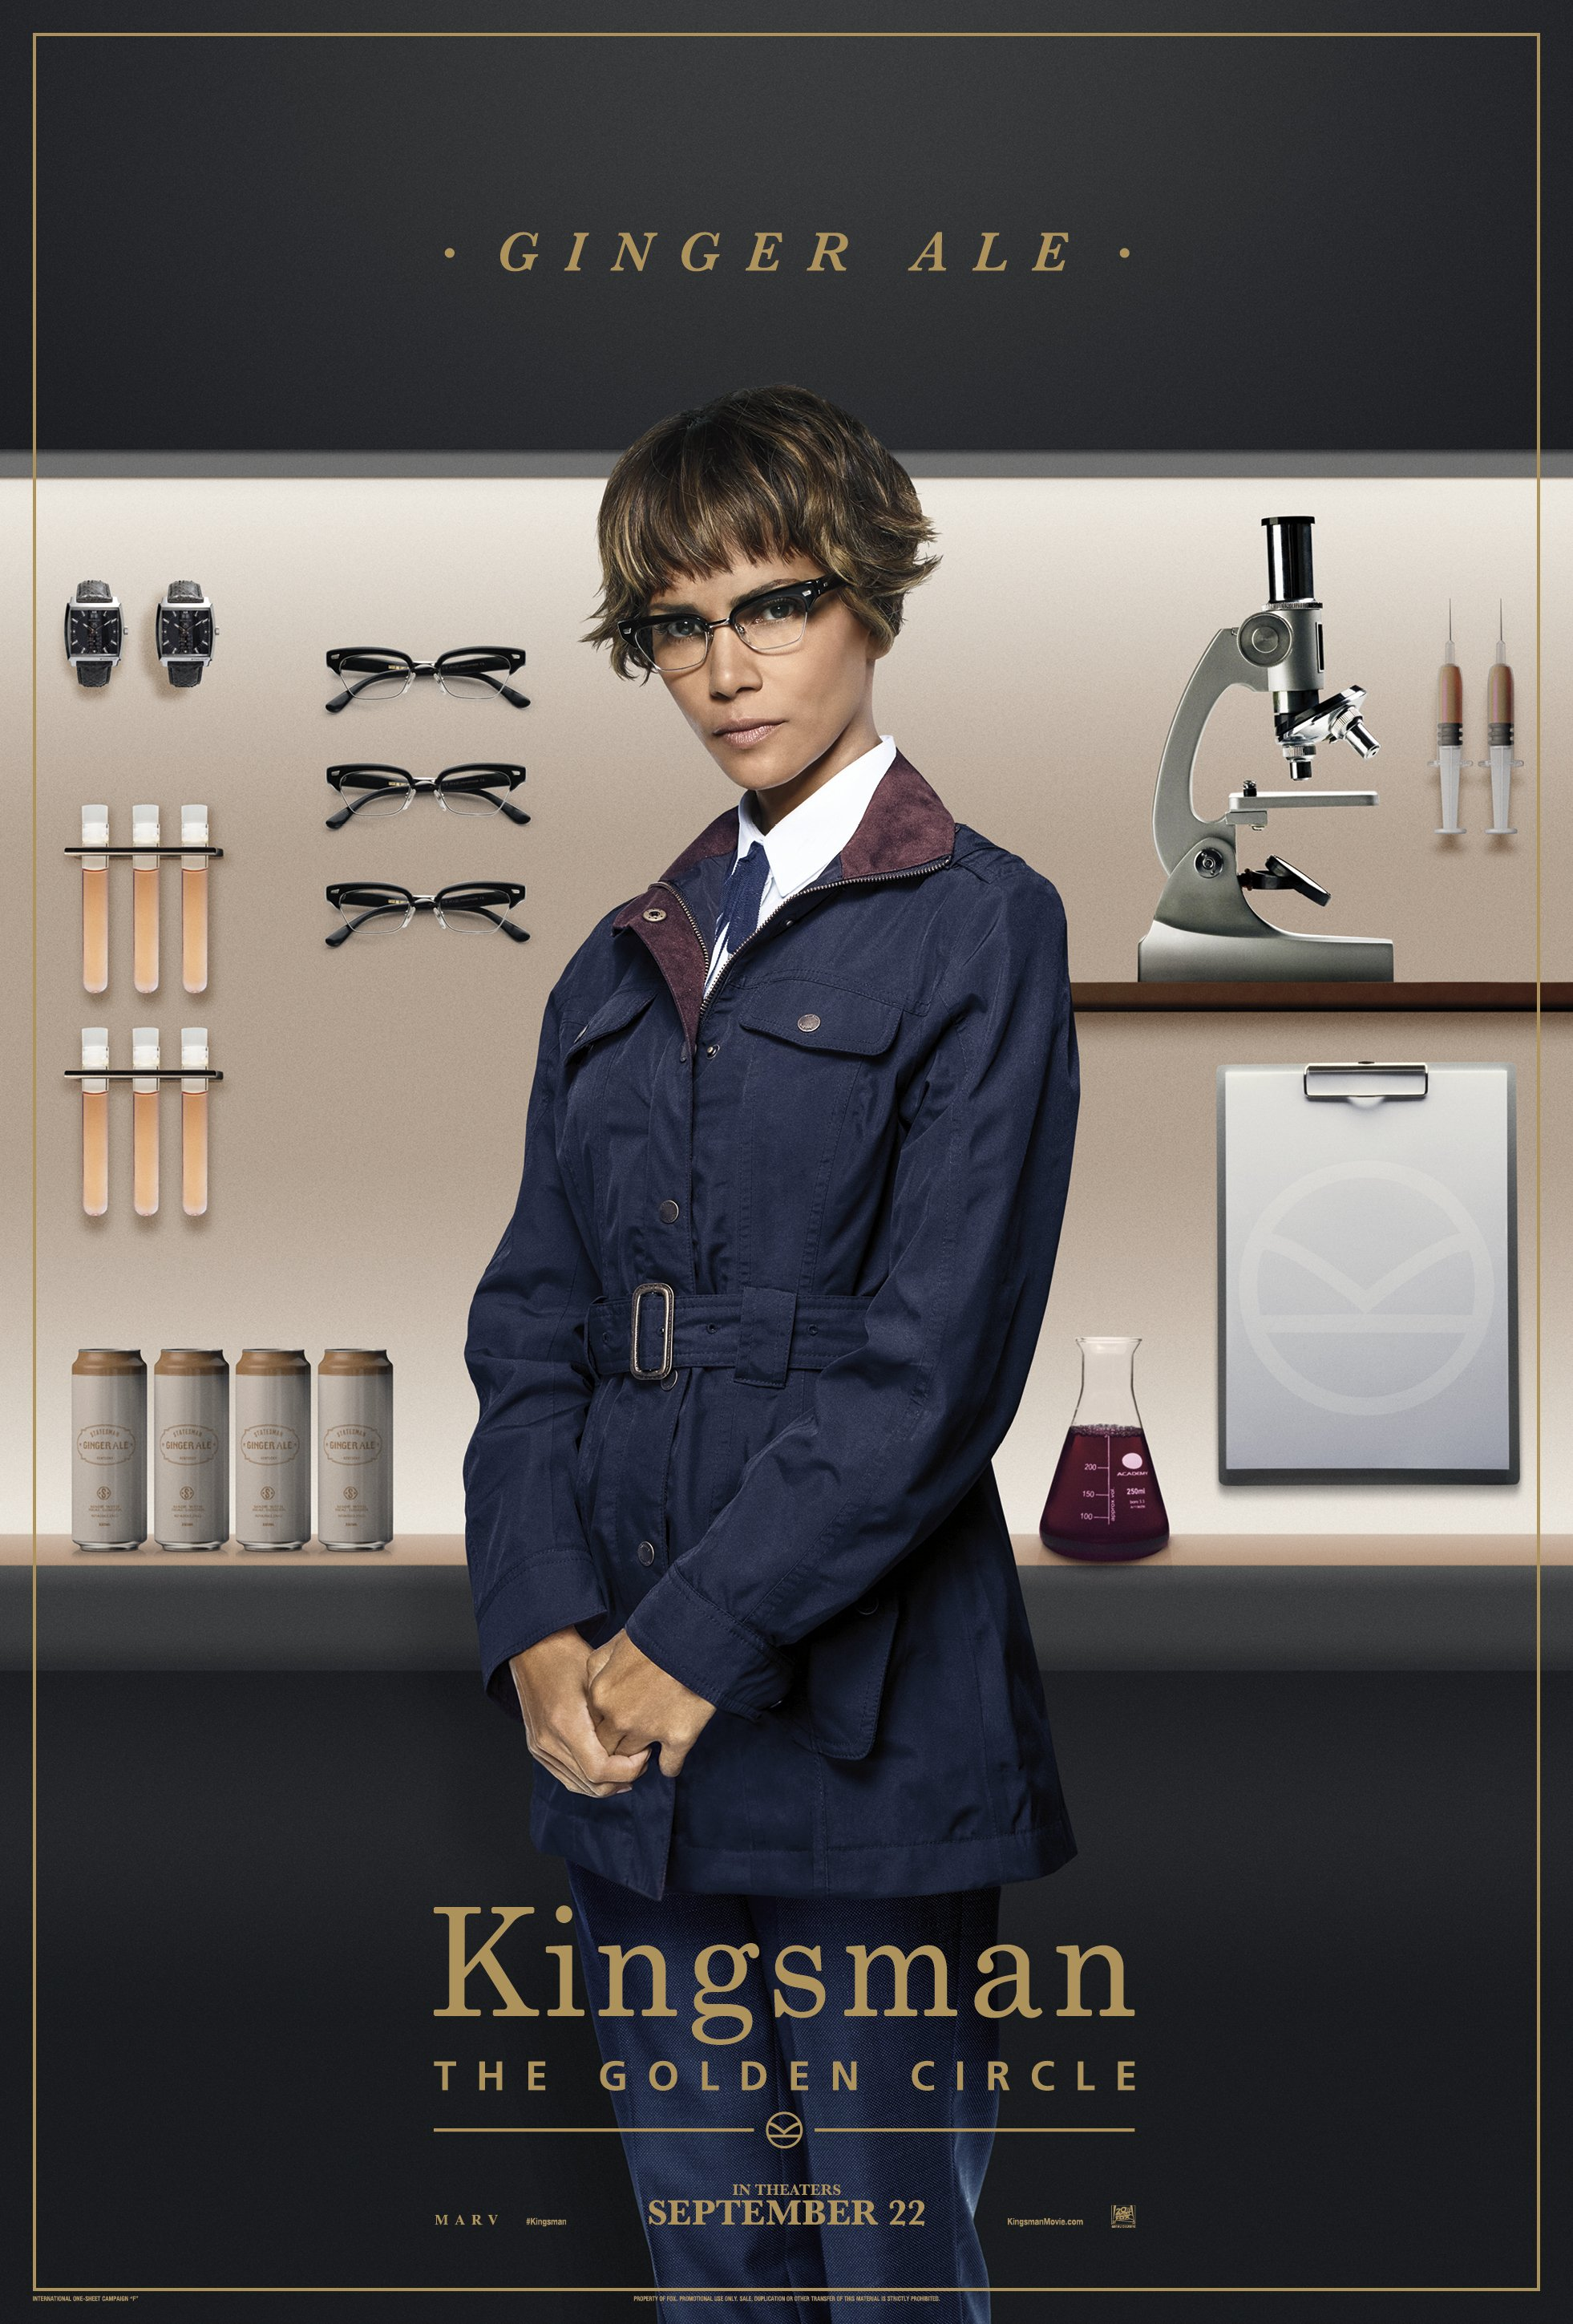 Kingsman Golden Circle karakterposters Ginger Ale